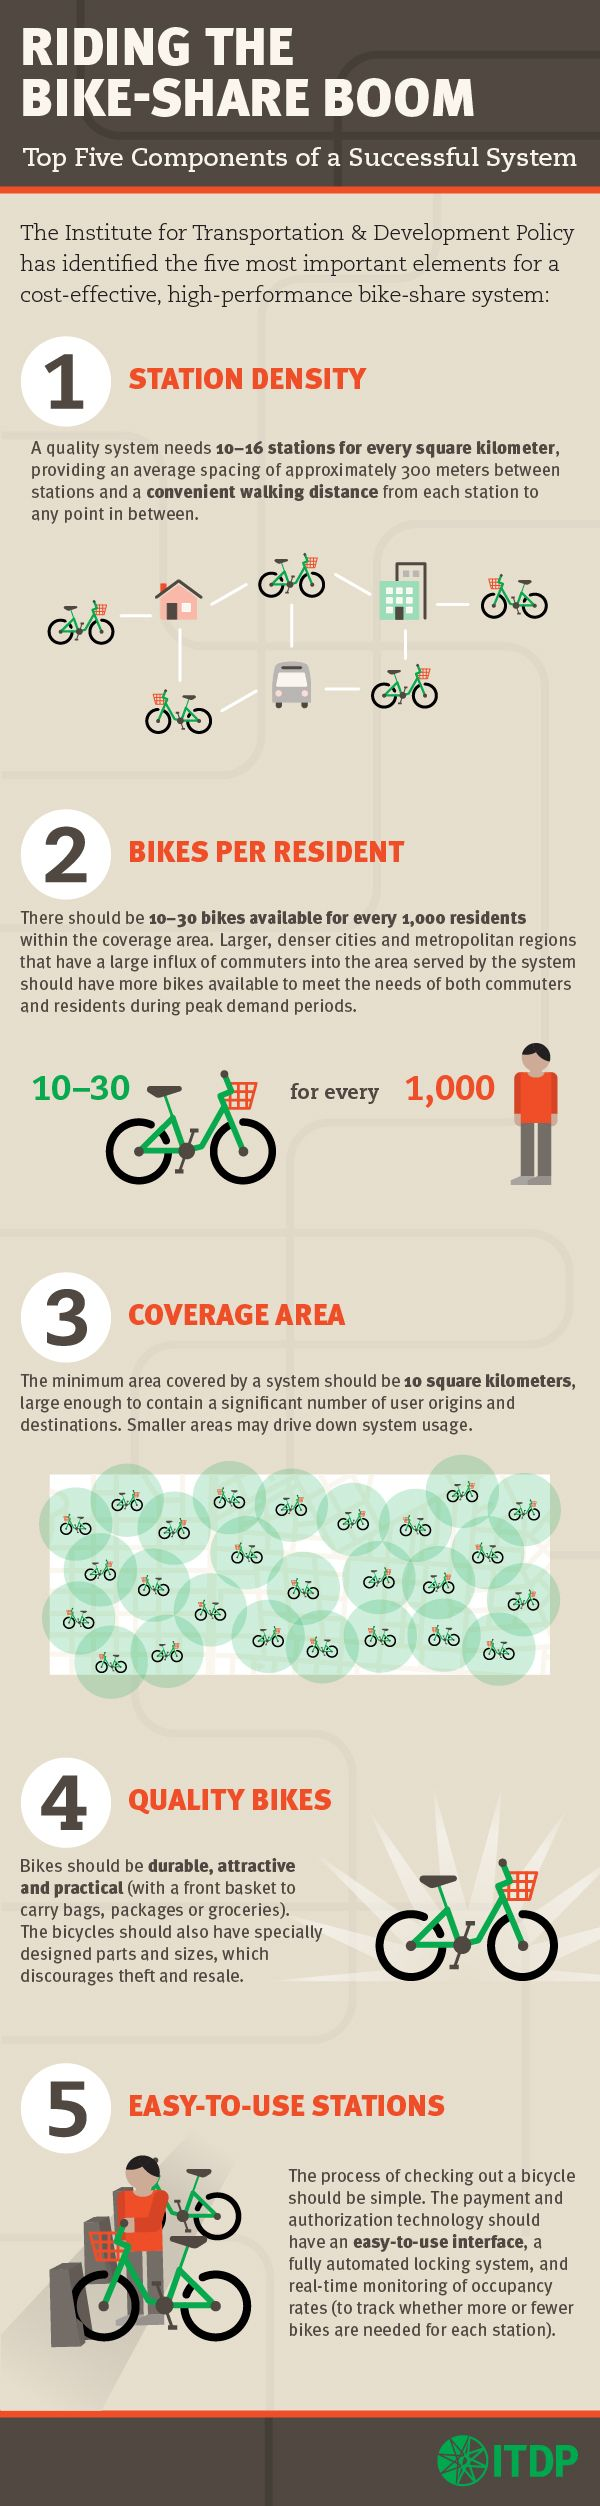 How Do You Grade a Bike-Share System? Click through image for the Bike Share Planning Guide from the nonprofit Institute for Transportation and Development Policy (ITDP), which guides planners through the nitty-gritty implementation process from feasibility studies and designs to financial plans. For more smart urbanism visit the Slow Ottawa 'Streets for Everyone' board.